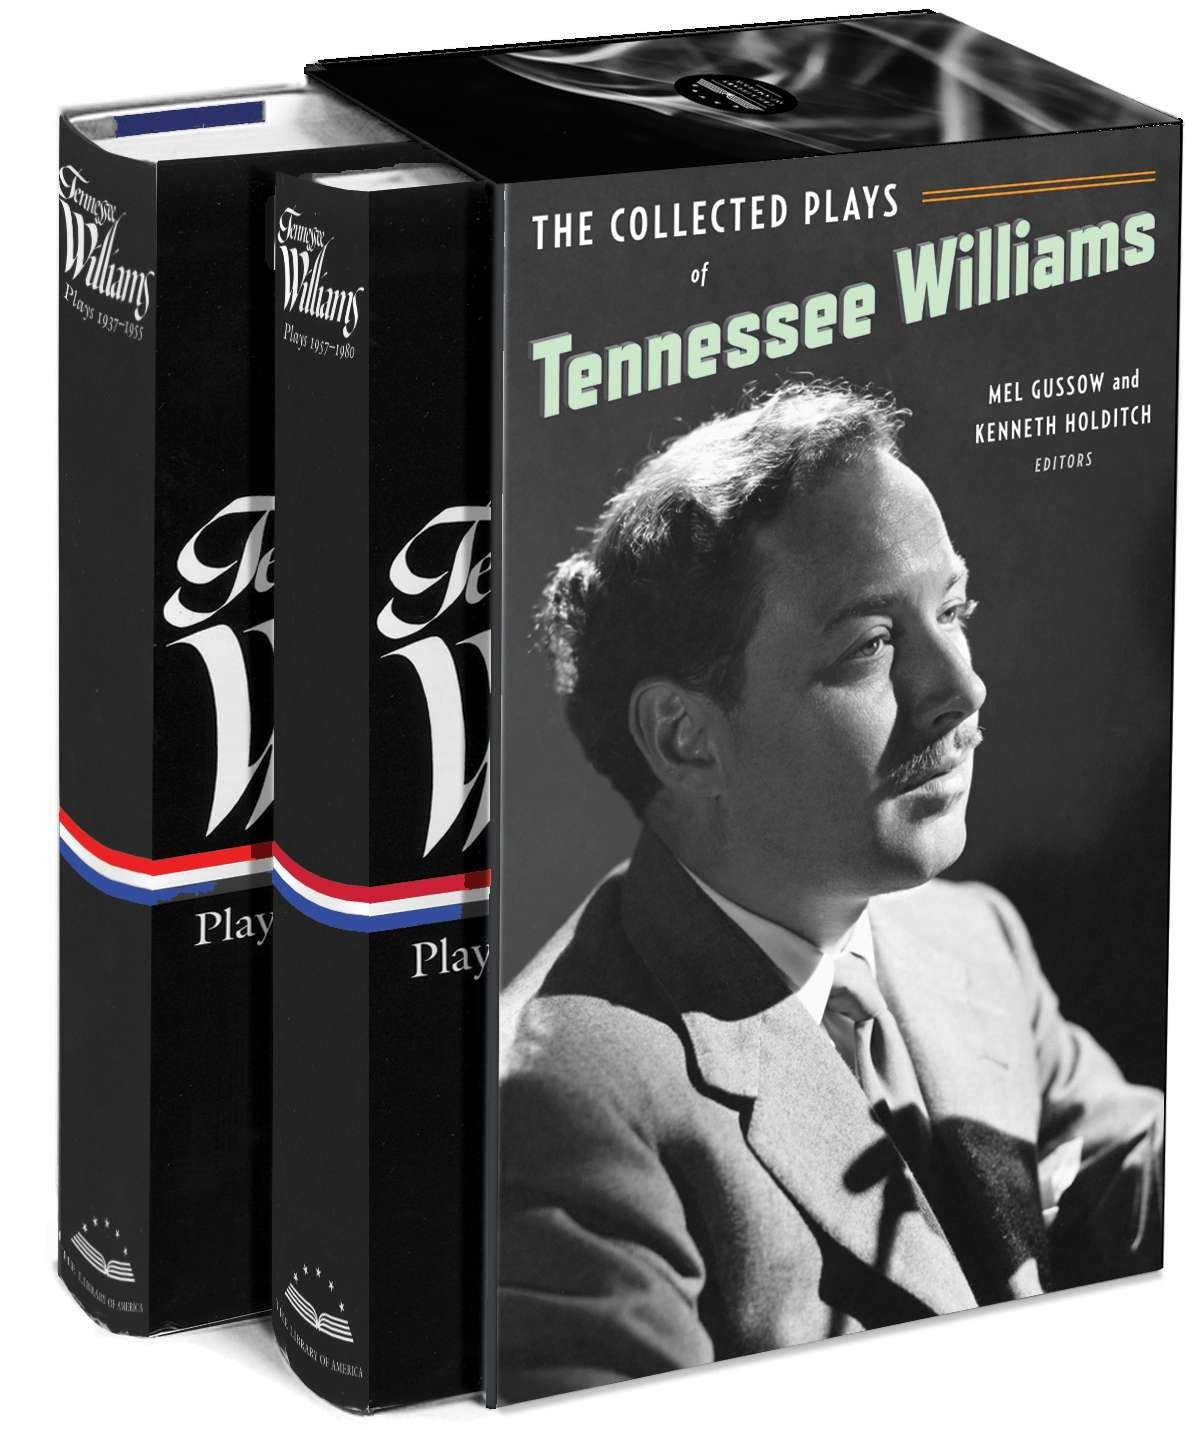 Download The Collected Plays of Tennessee Williams: A Library of America Boxed Set (The Library of America) pdf